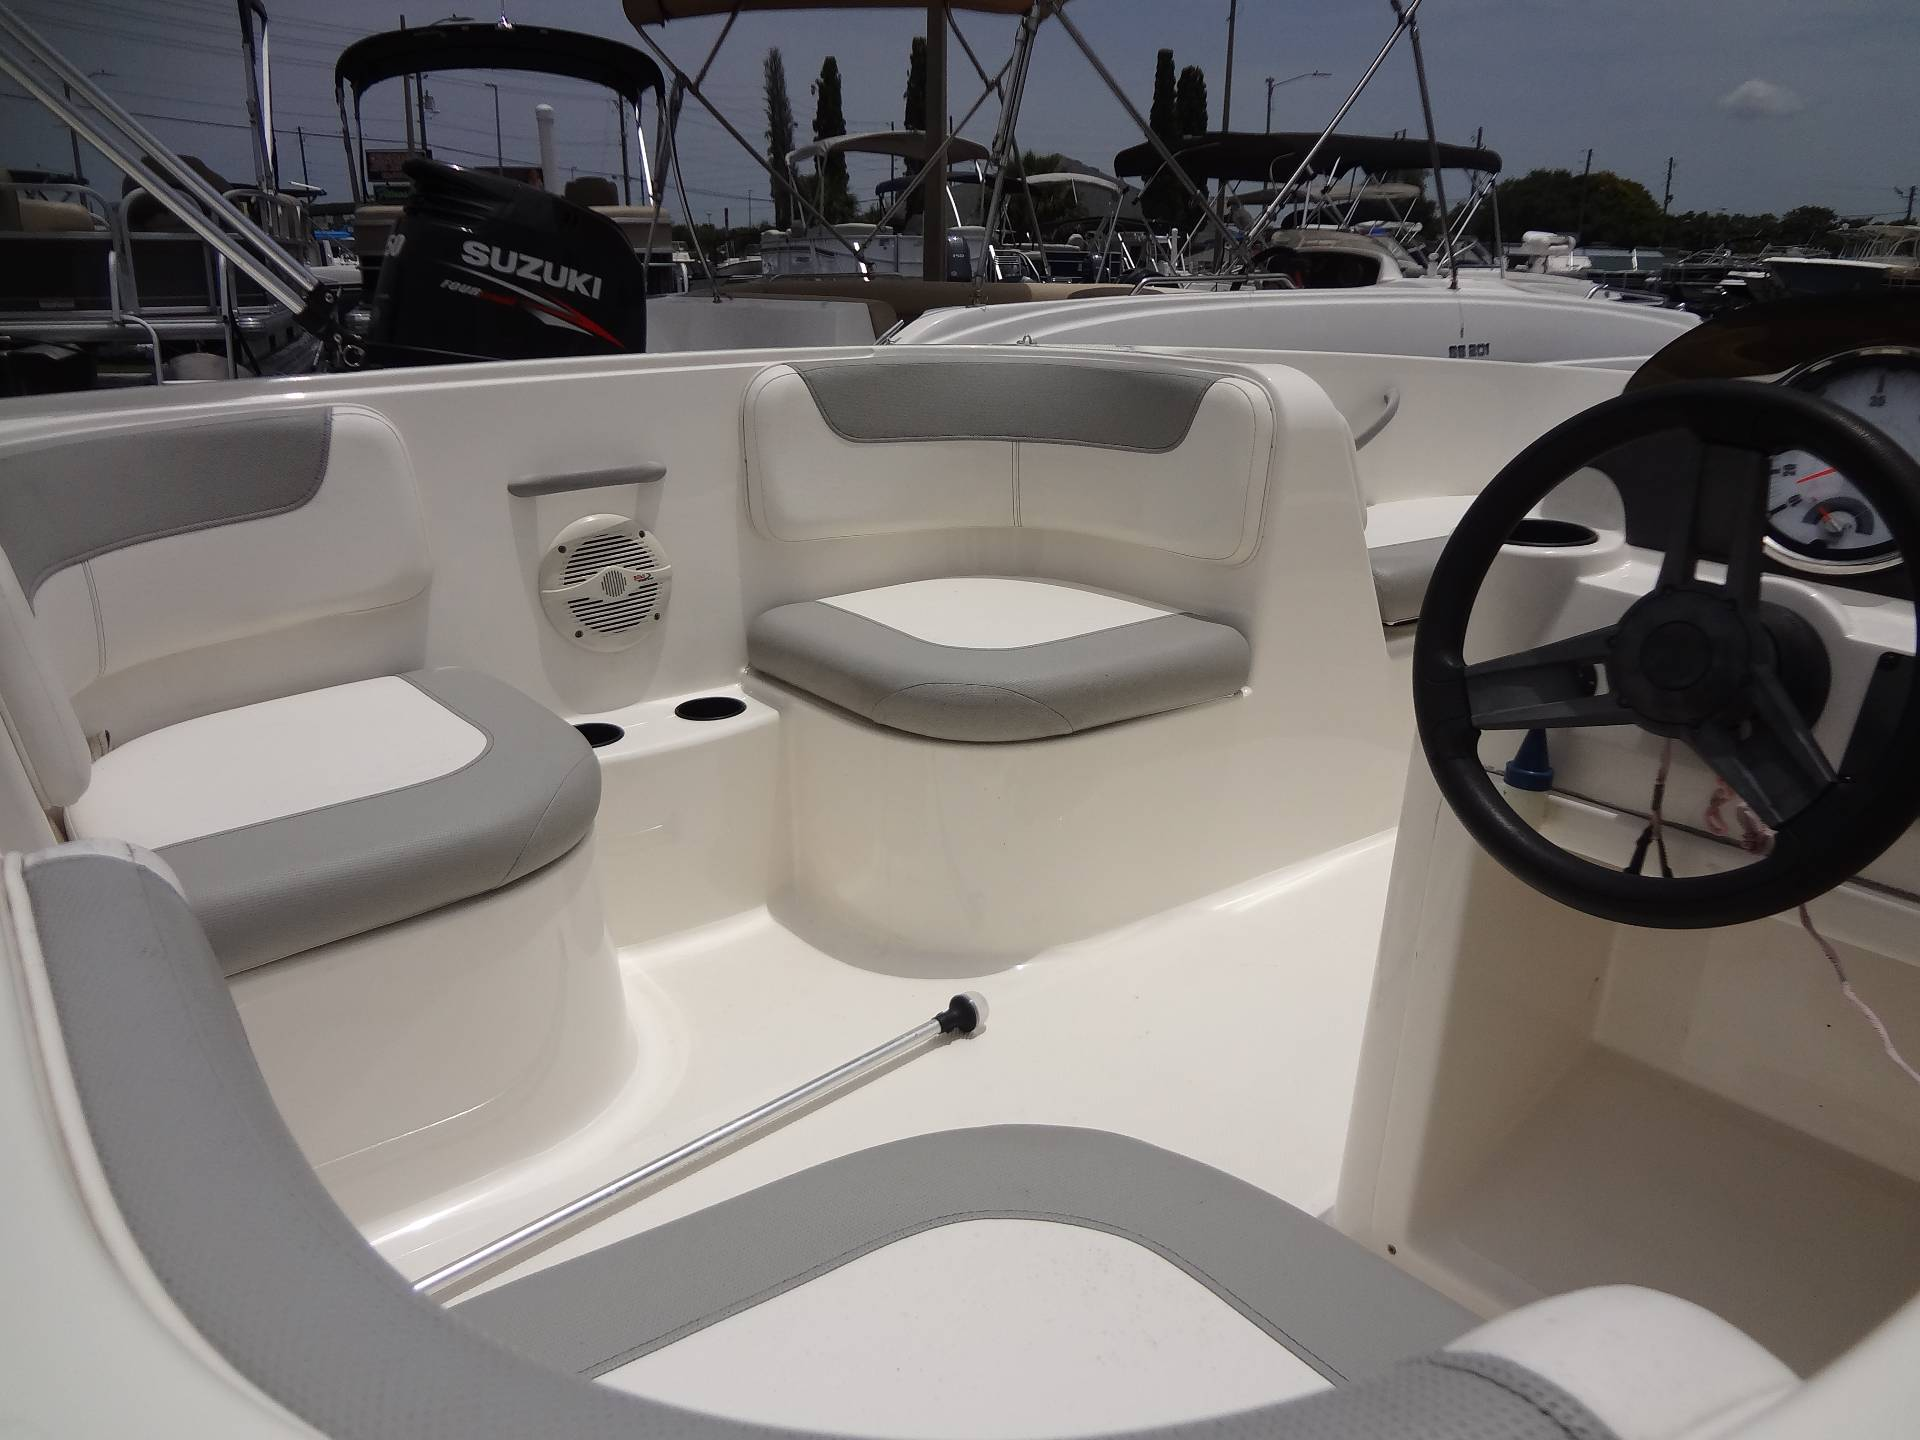 2016 Bayliner(Private) ELEMENT XL in Holiday, Florida - Photo 20